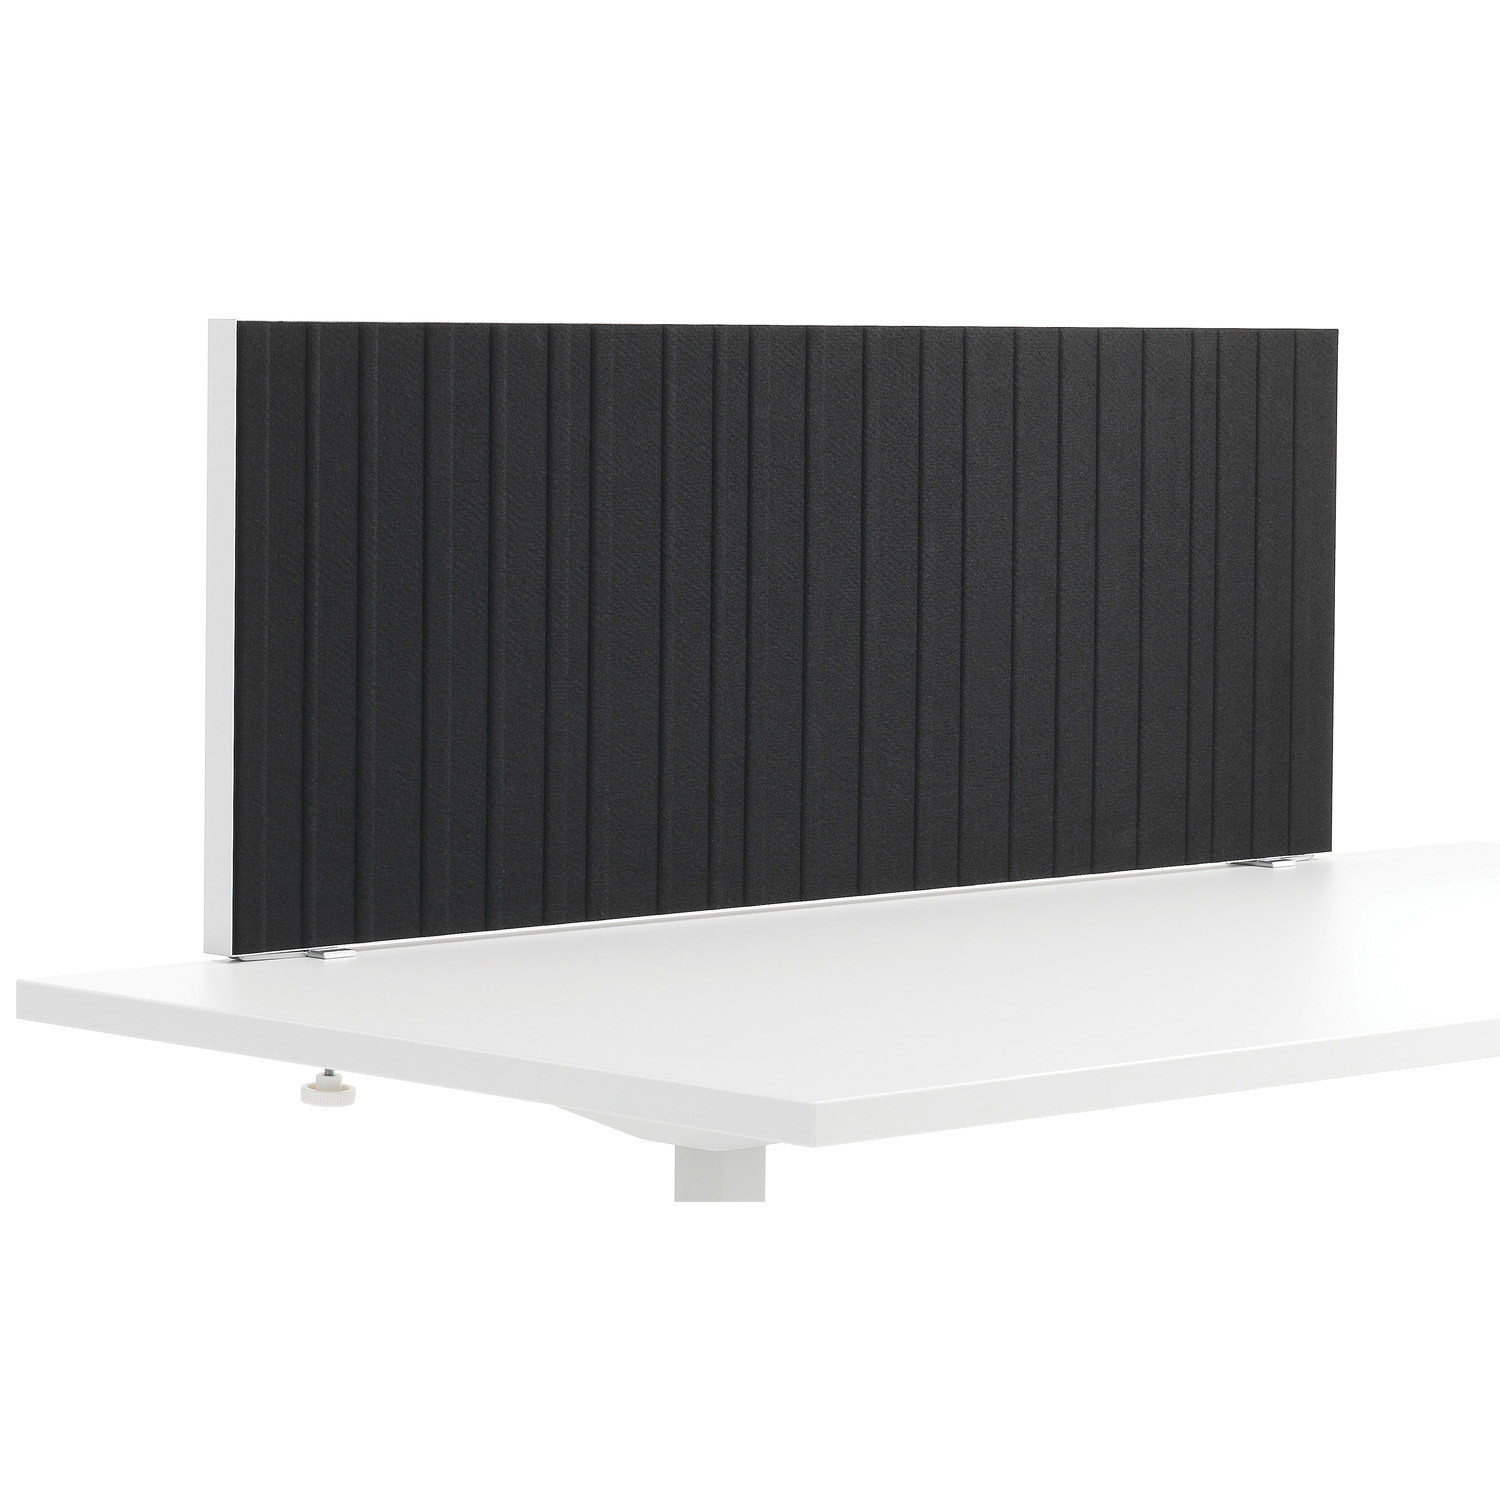 Alumi Acoustic Desk Screen